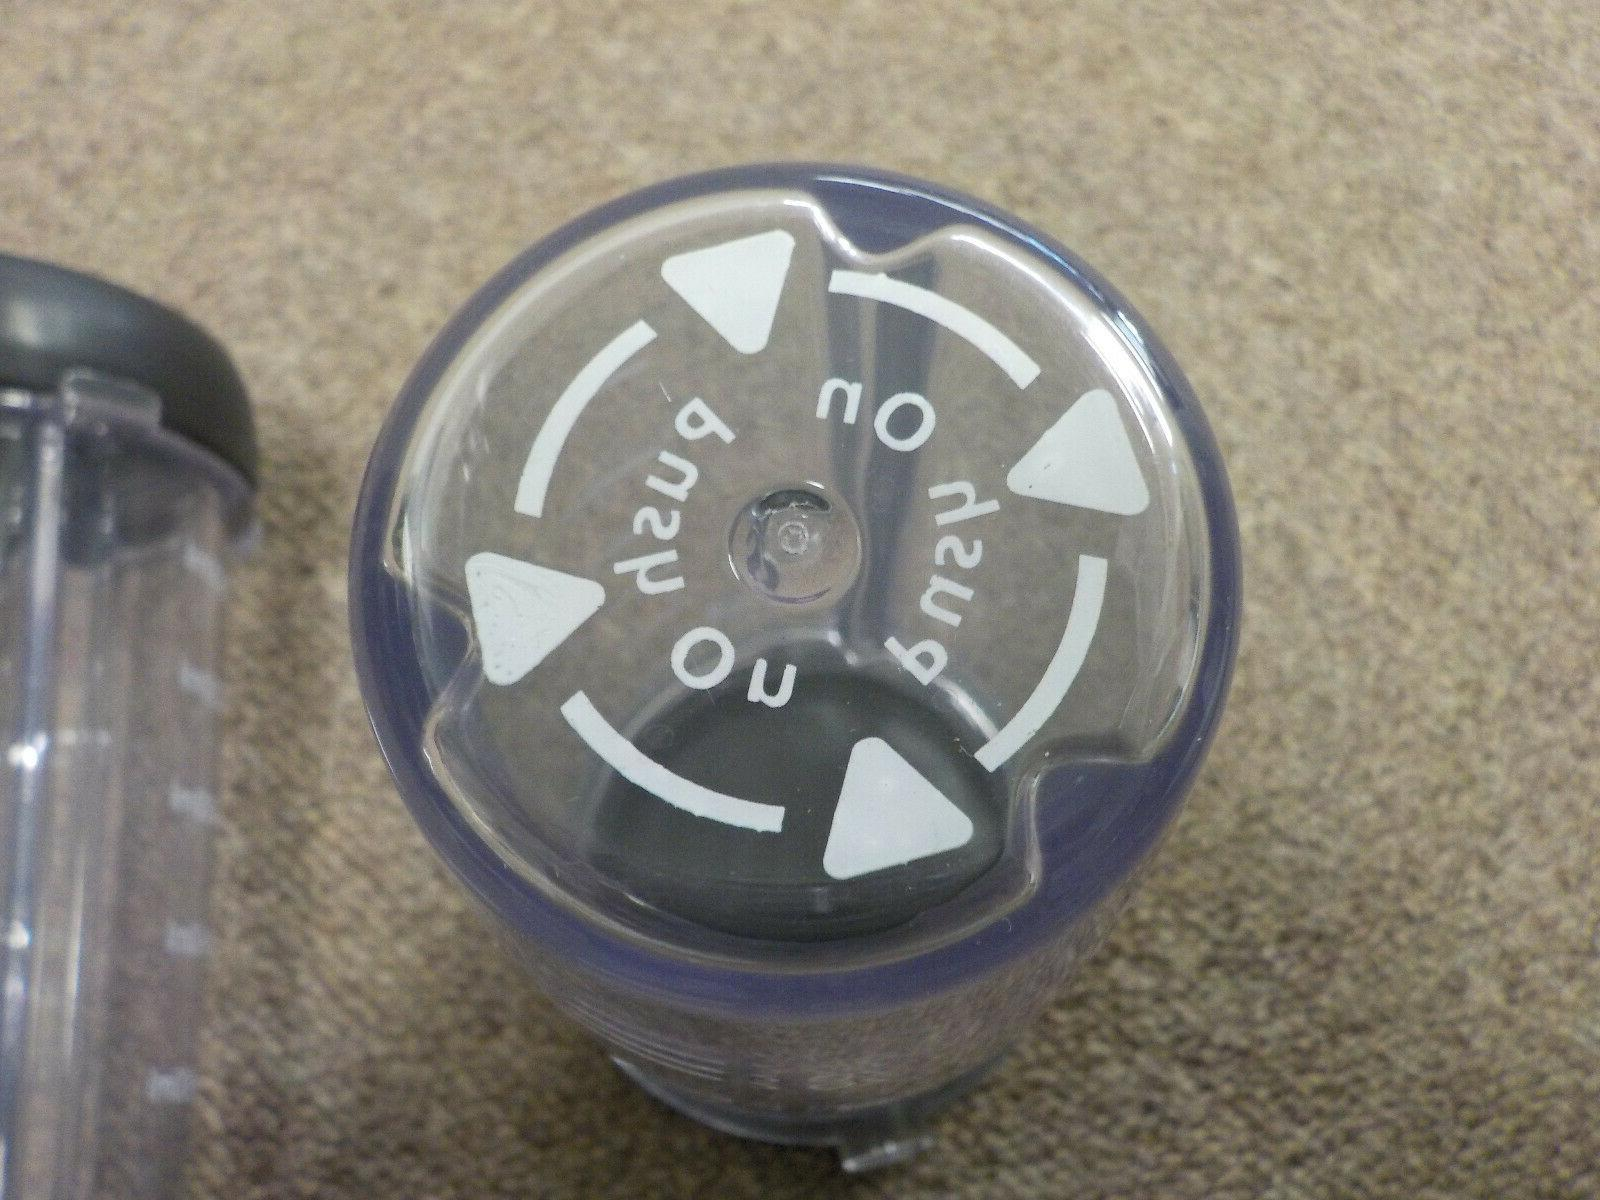 2 - to replacement unsure which blender